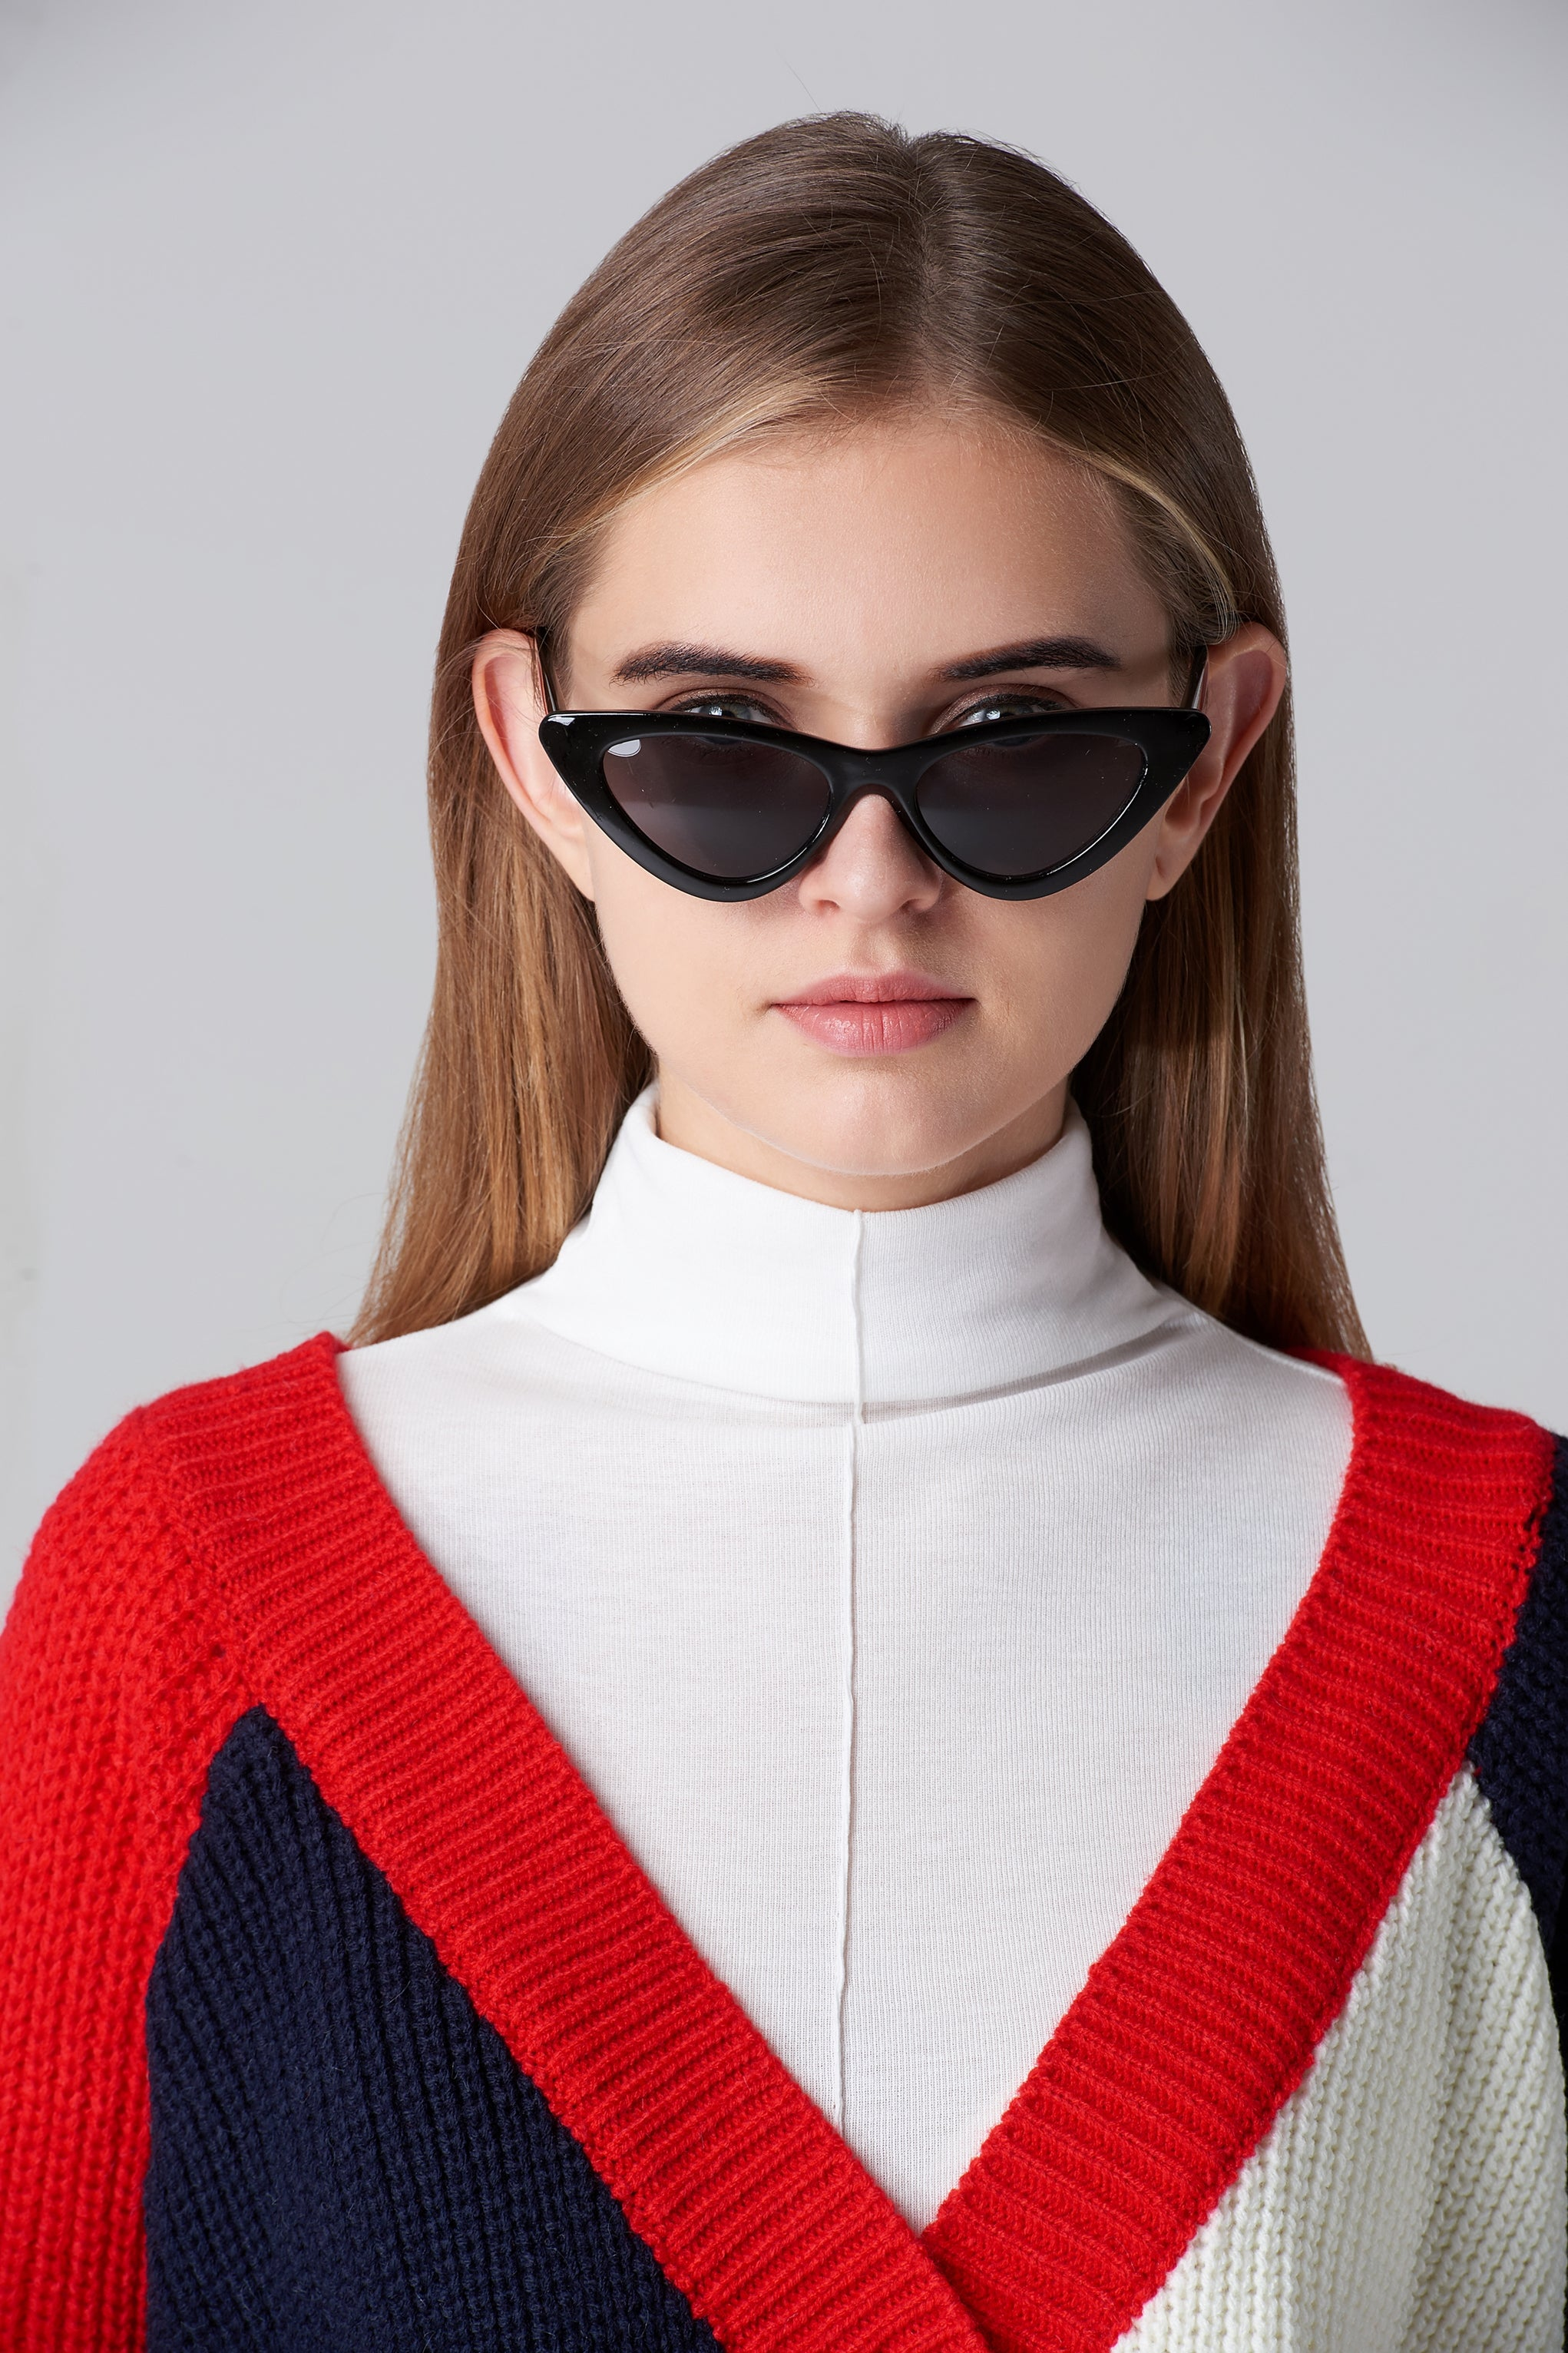 20946e0b70c9 people are viewing this item right now. Black Vintage Slim Pointy Cat Eye  Sunglasses